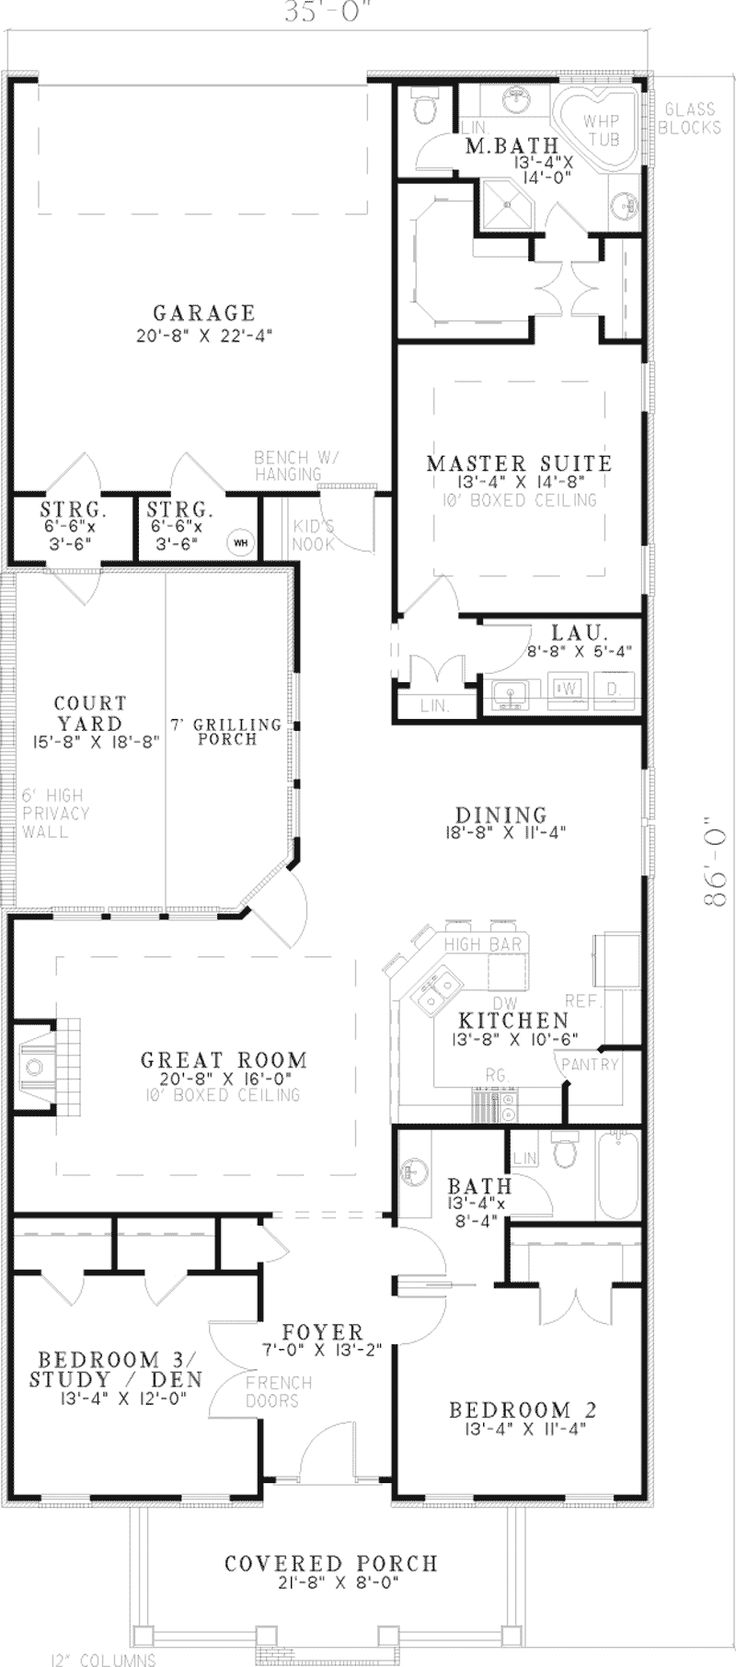 72 Best House Plans Images On Pinterest Small Homes